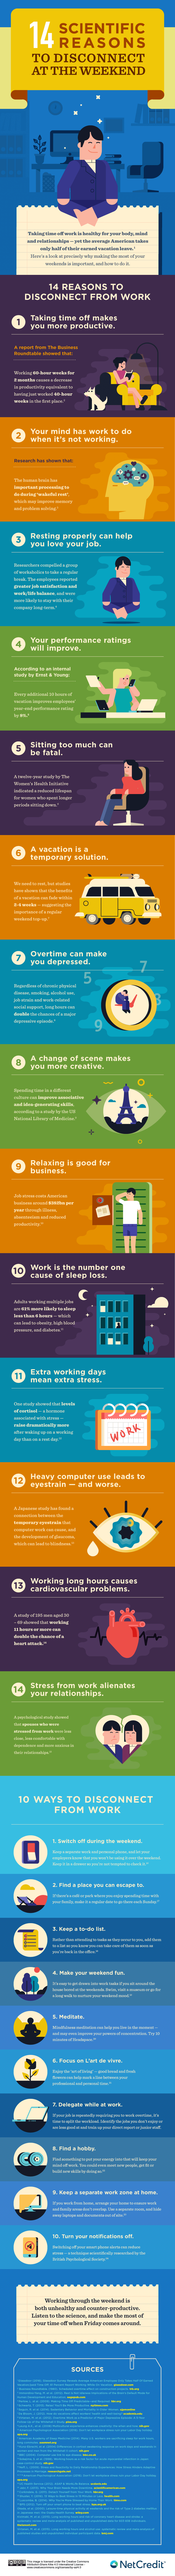 disconnect from work infographic